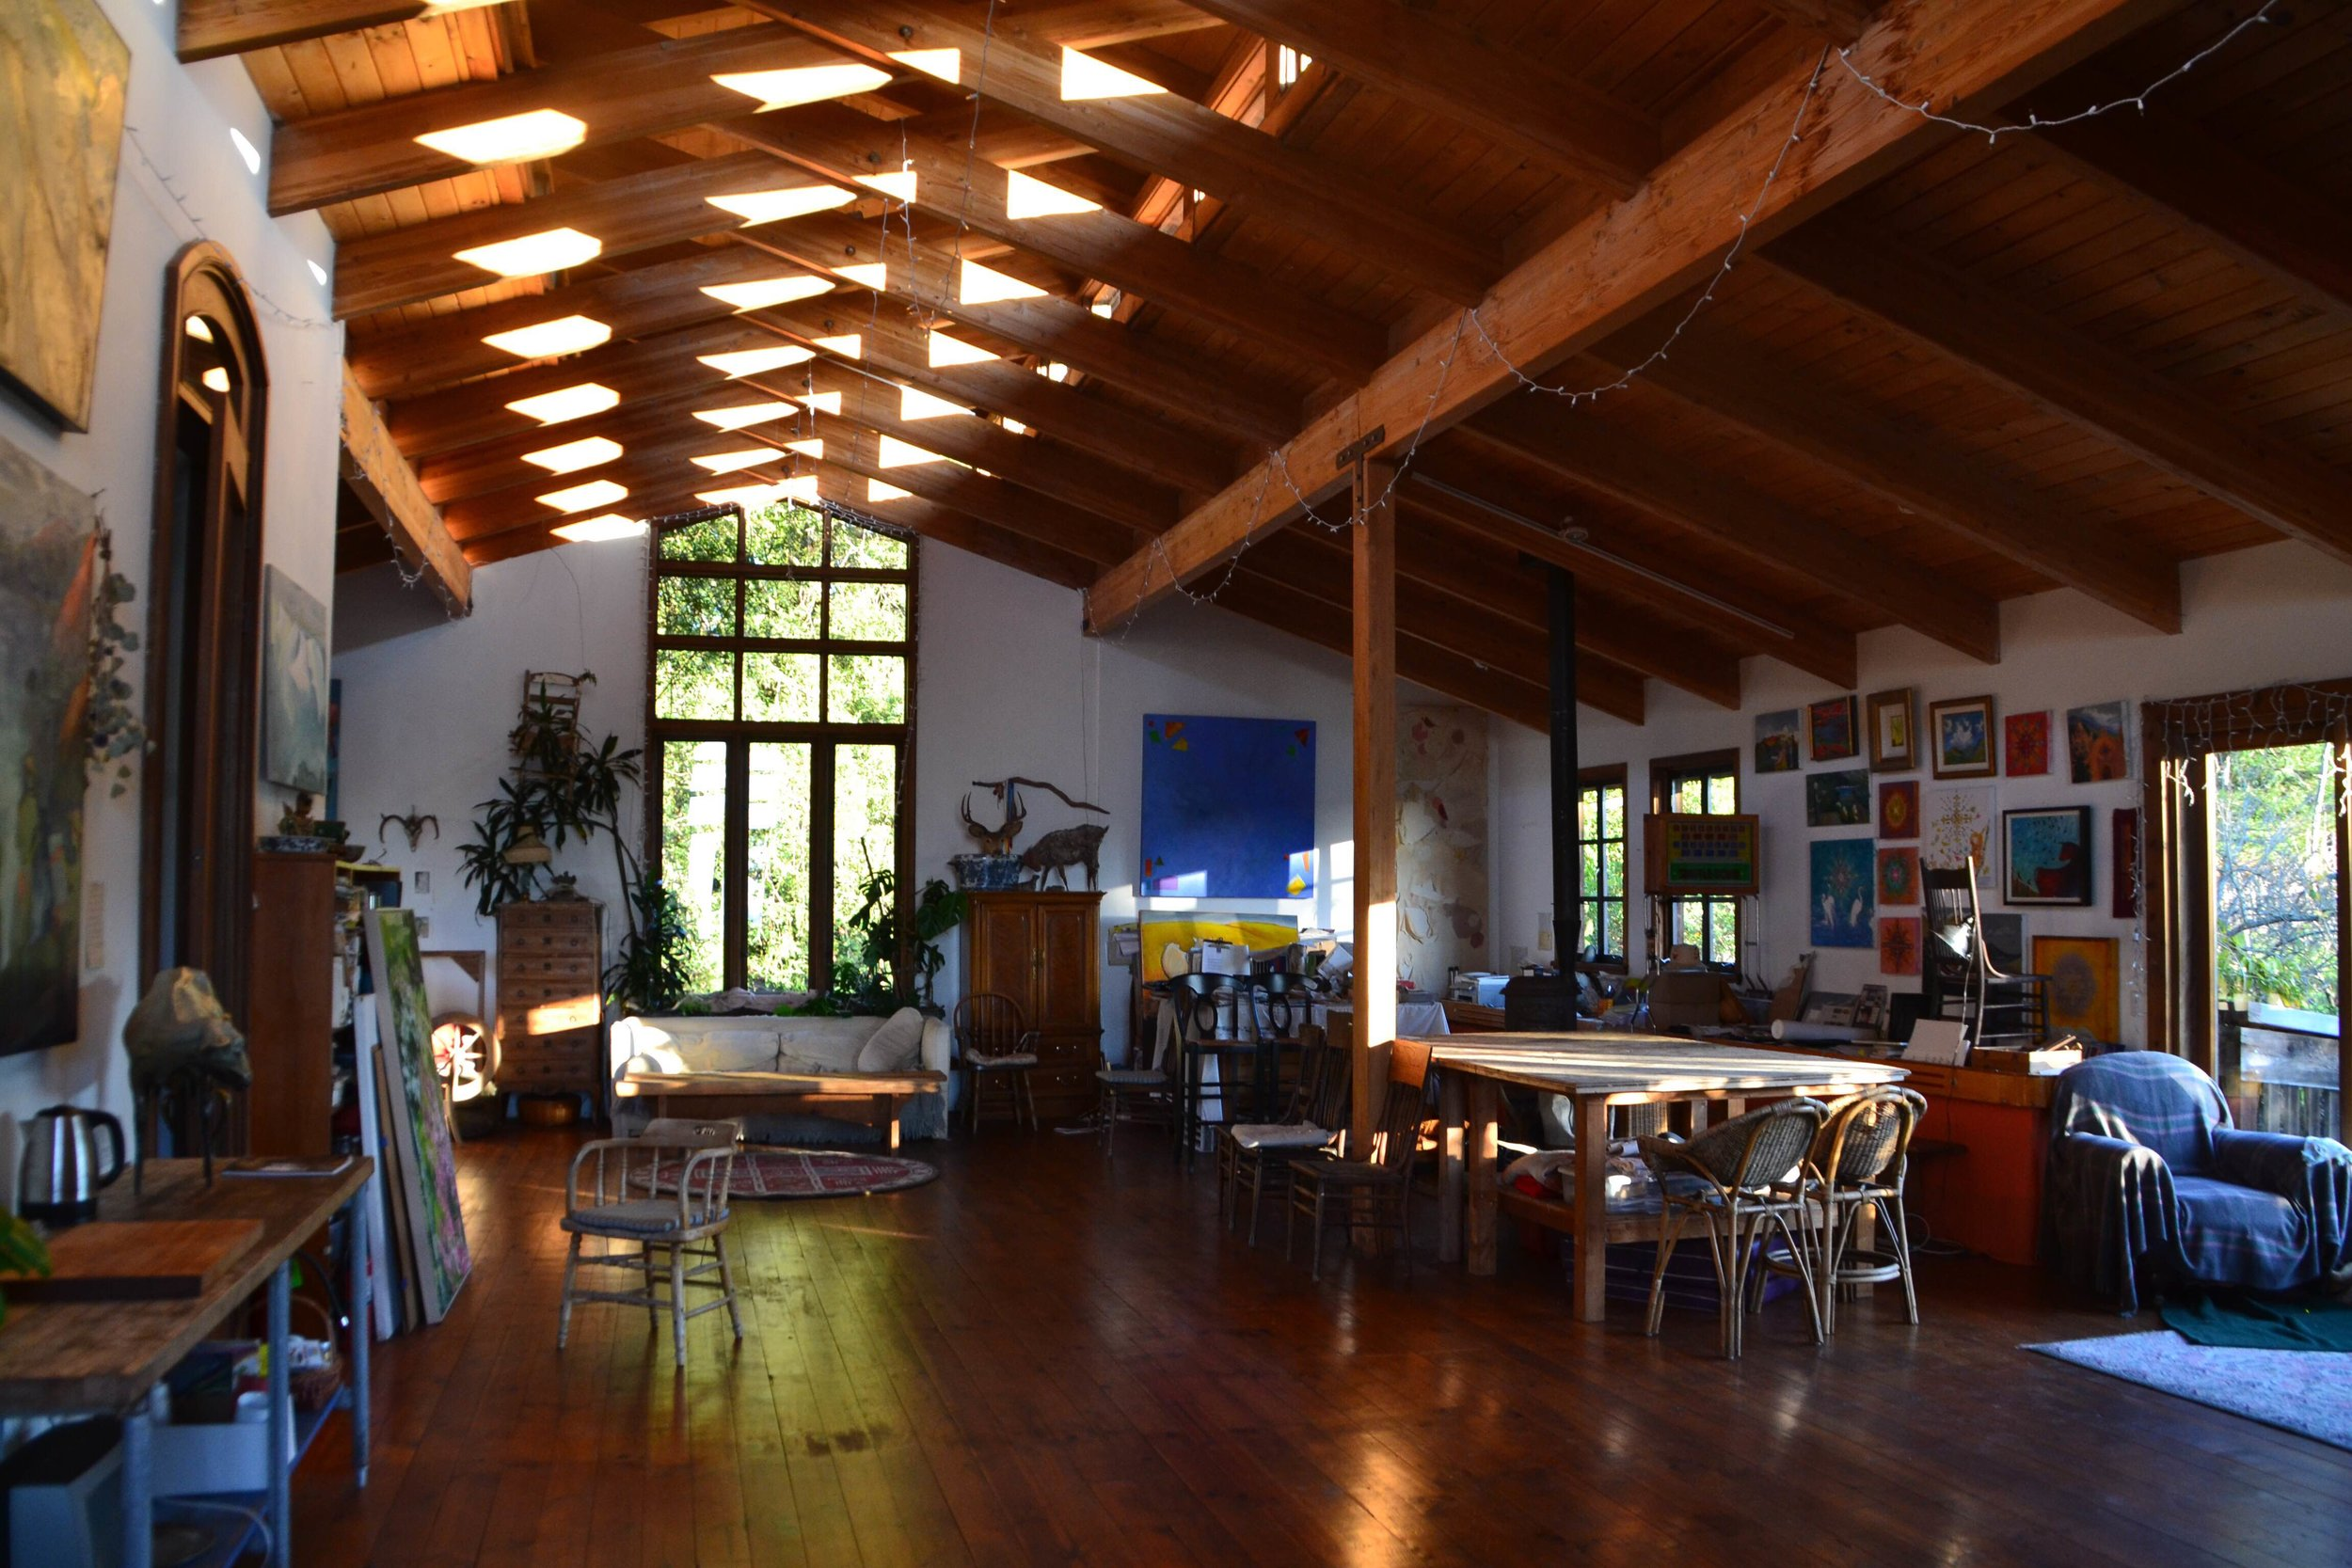 The Barn serves the camp for meals, practice sessions, concerts, and spontaneous jams